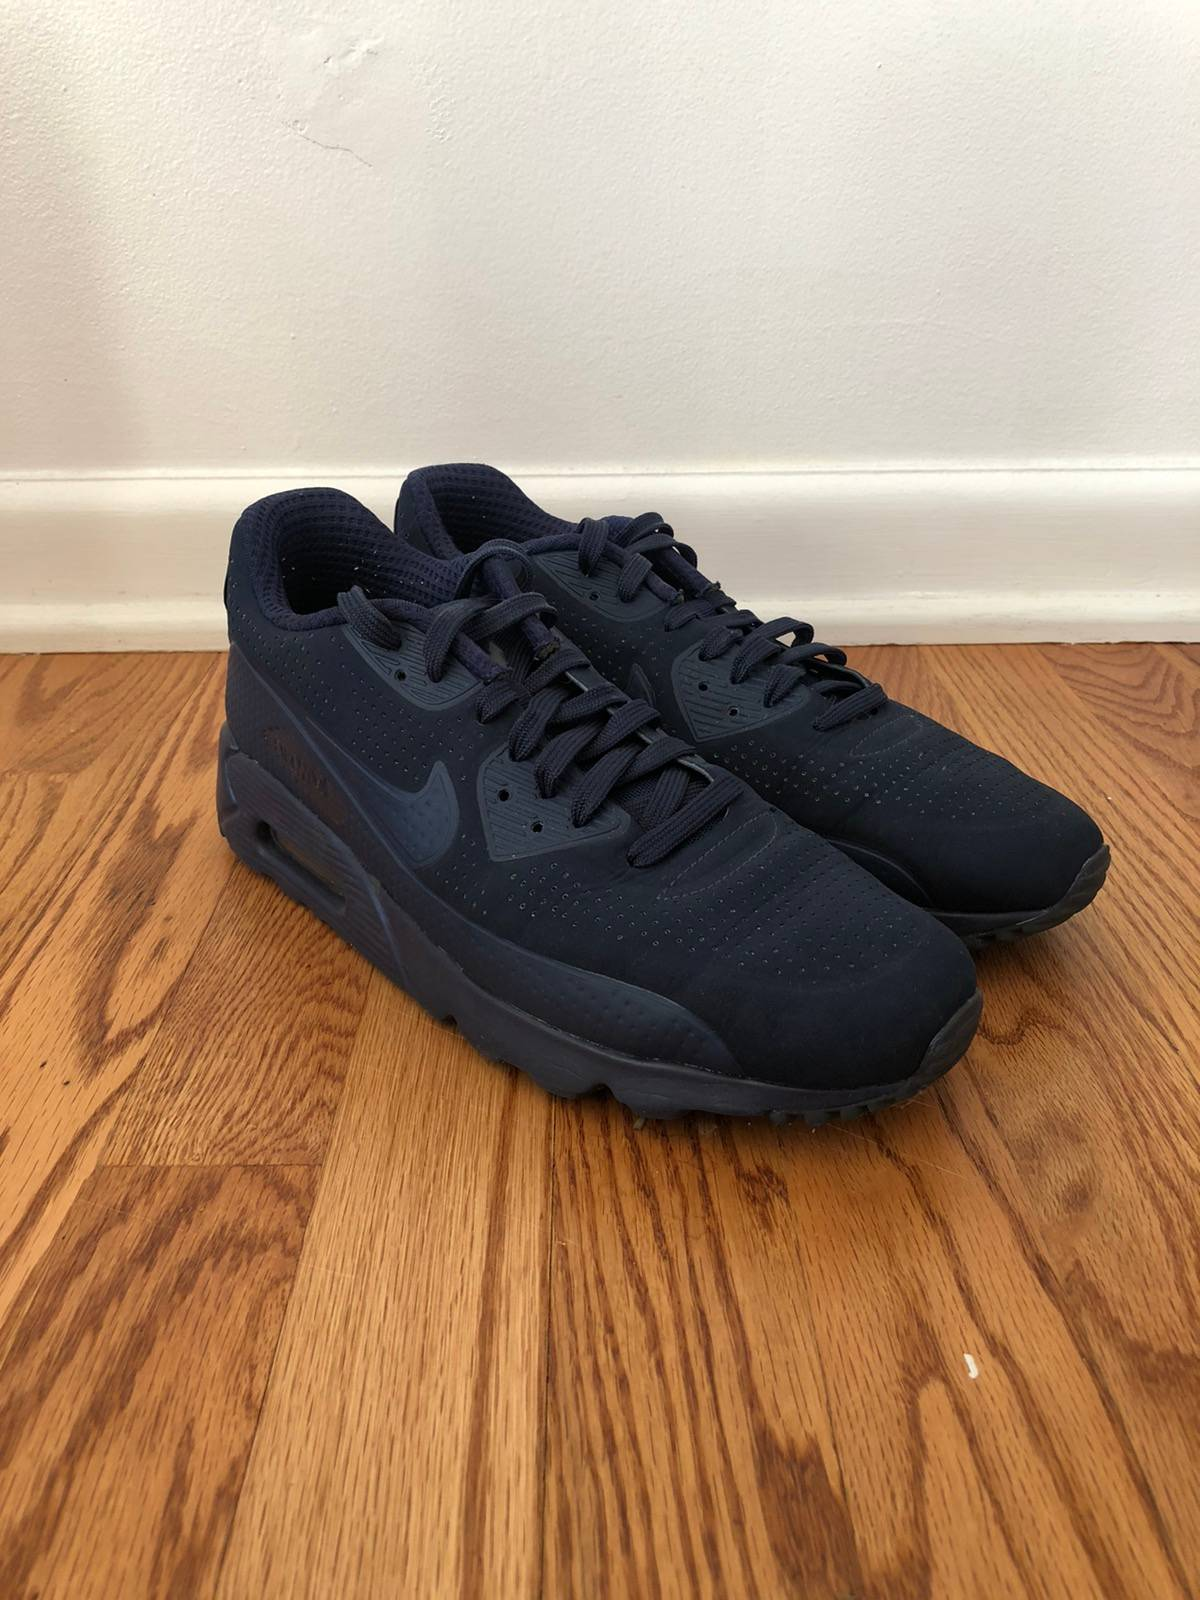 Nike Air Max 90 Ultra Moire Midnight Navy Size 9 $94